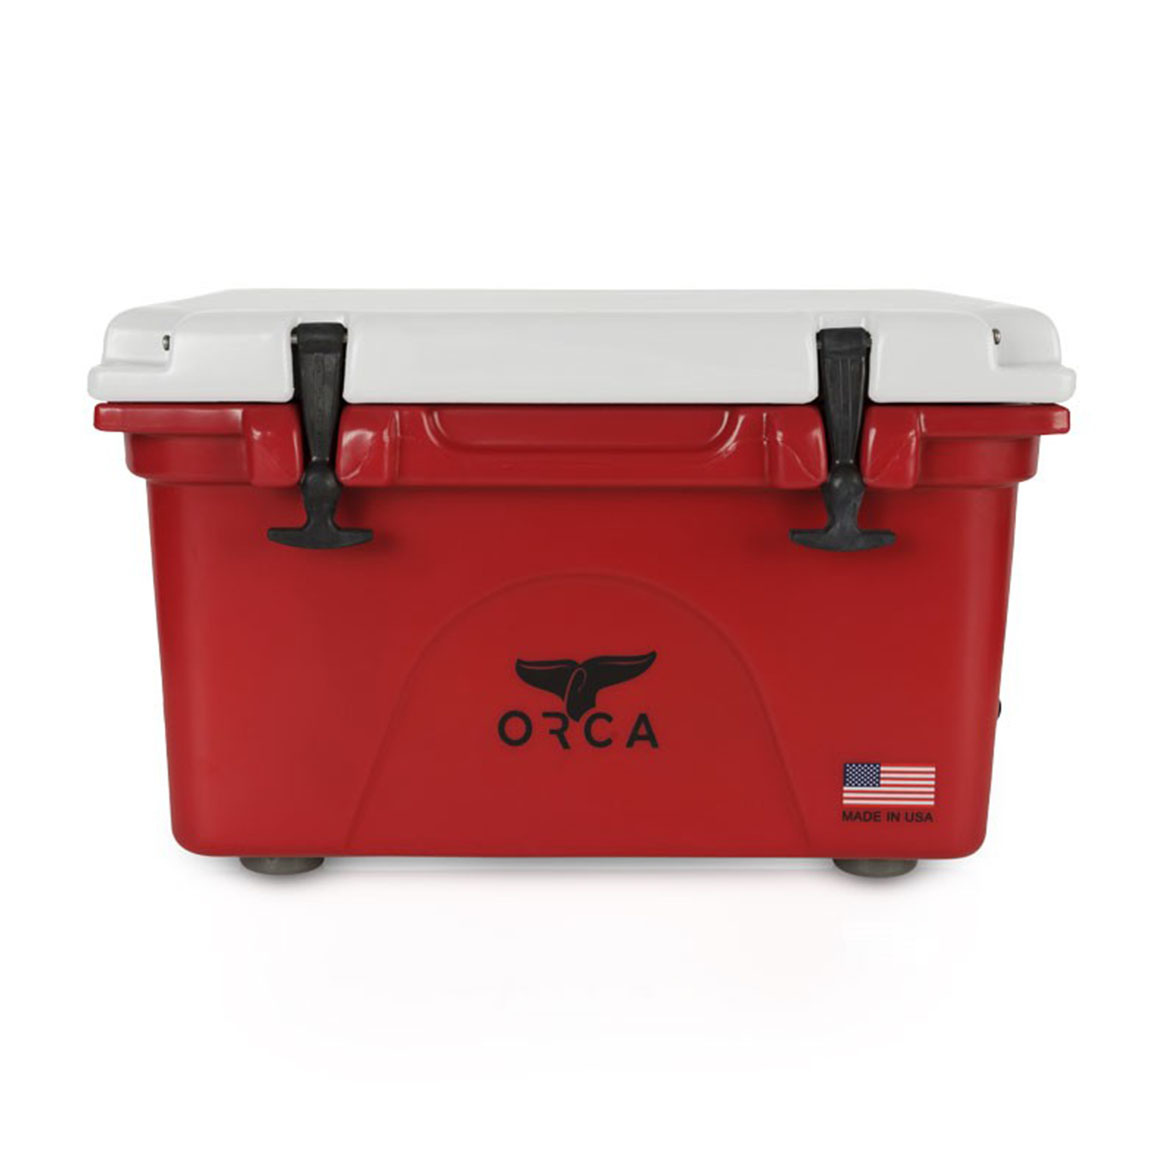 Heavy Duty Coolers : Orca extra heavy duty coolers ebay